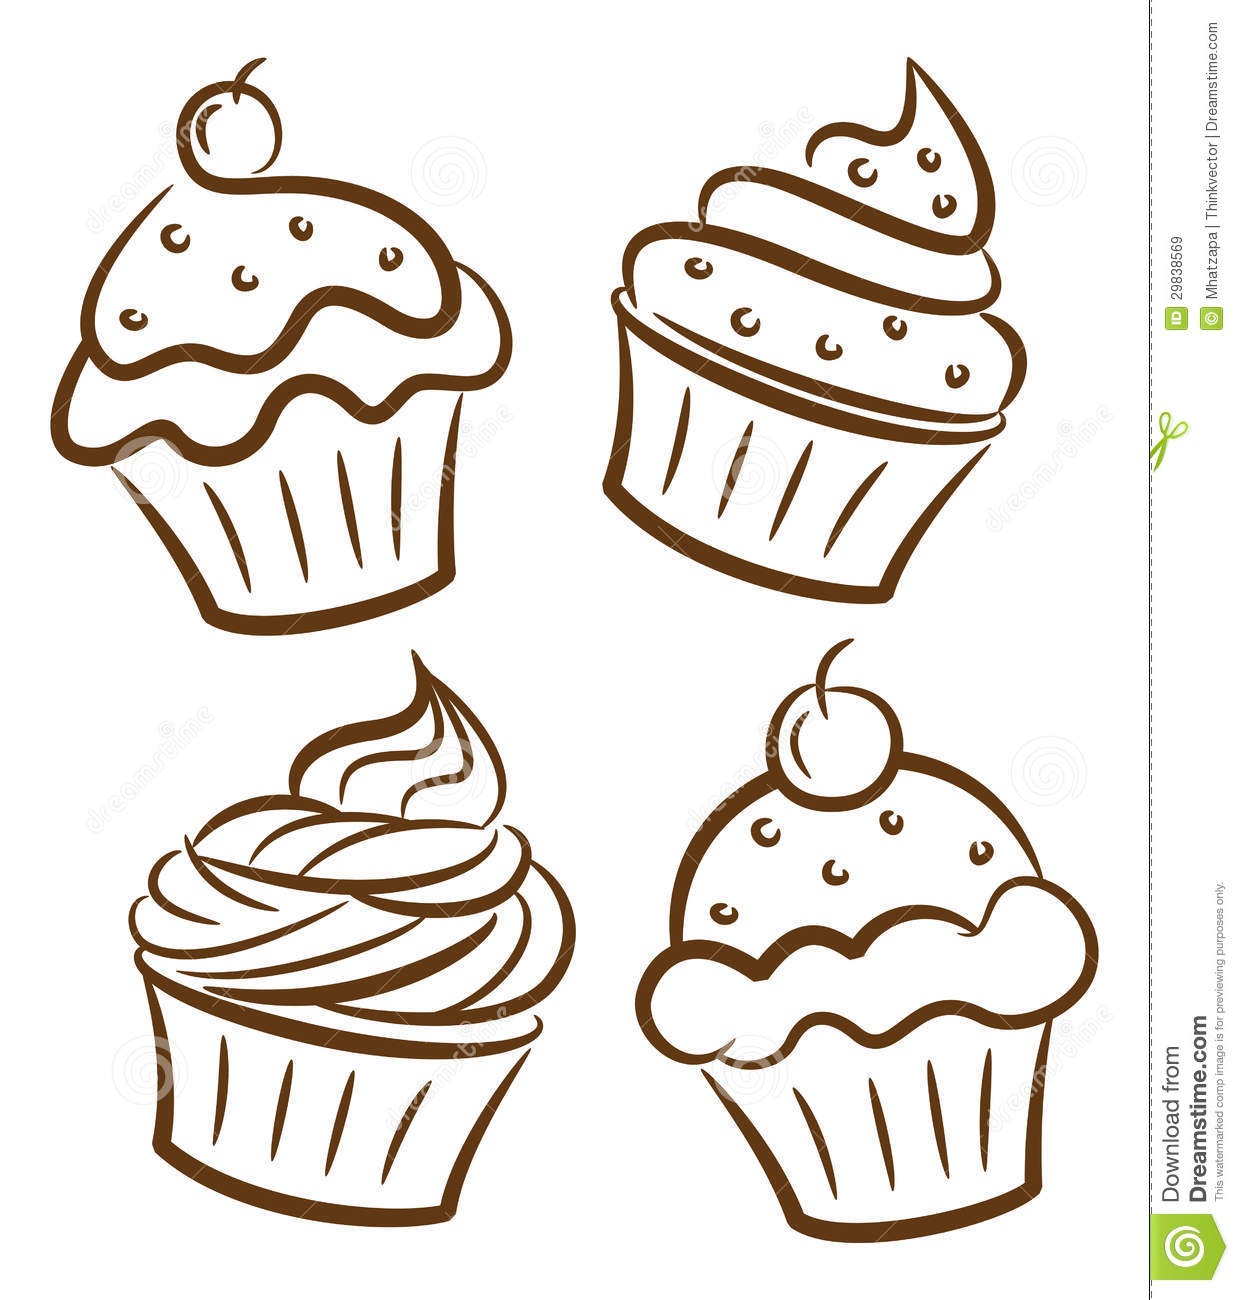 Cupcake Doodle Royalty Free Stock Images - Image: 29838569